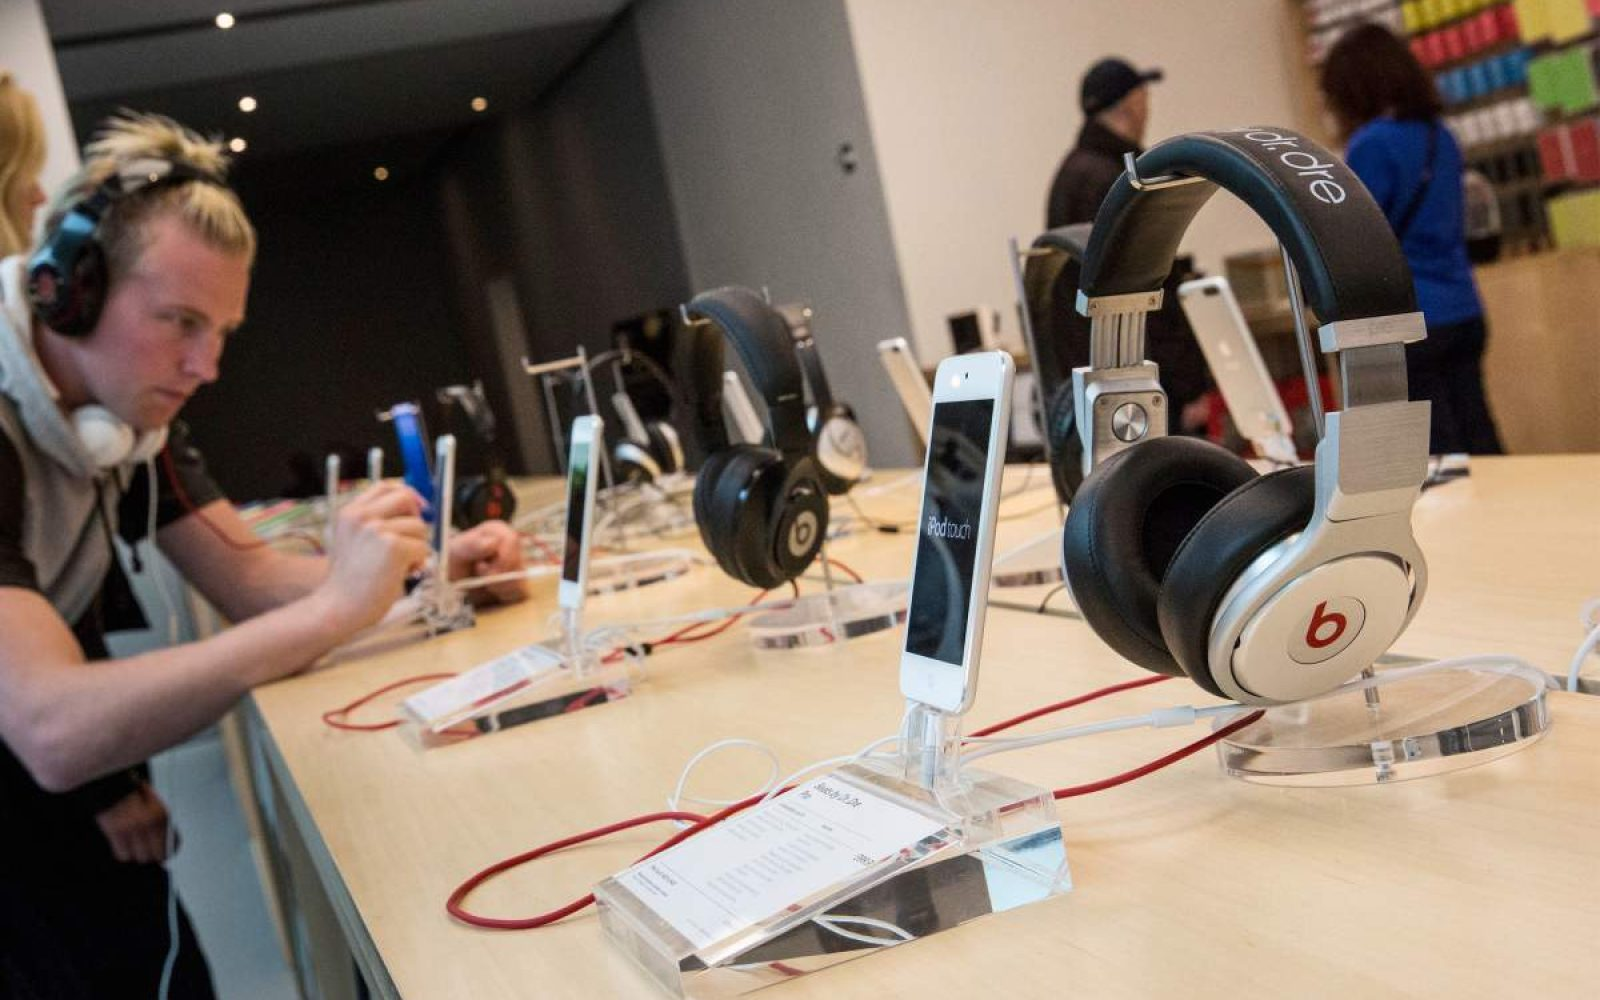 Apple Stores will now allow customers to test in-ear